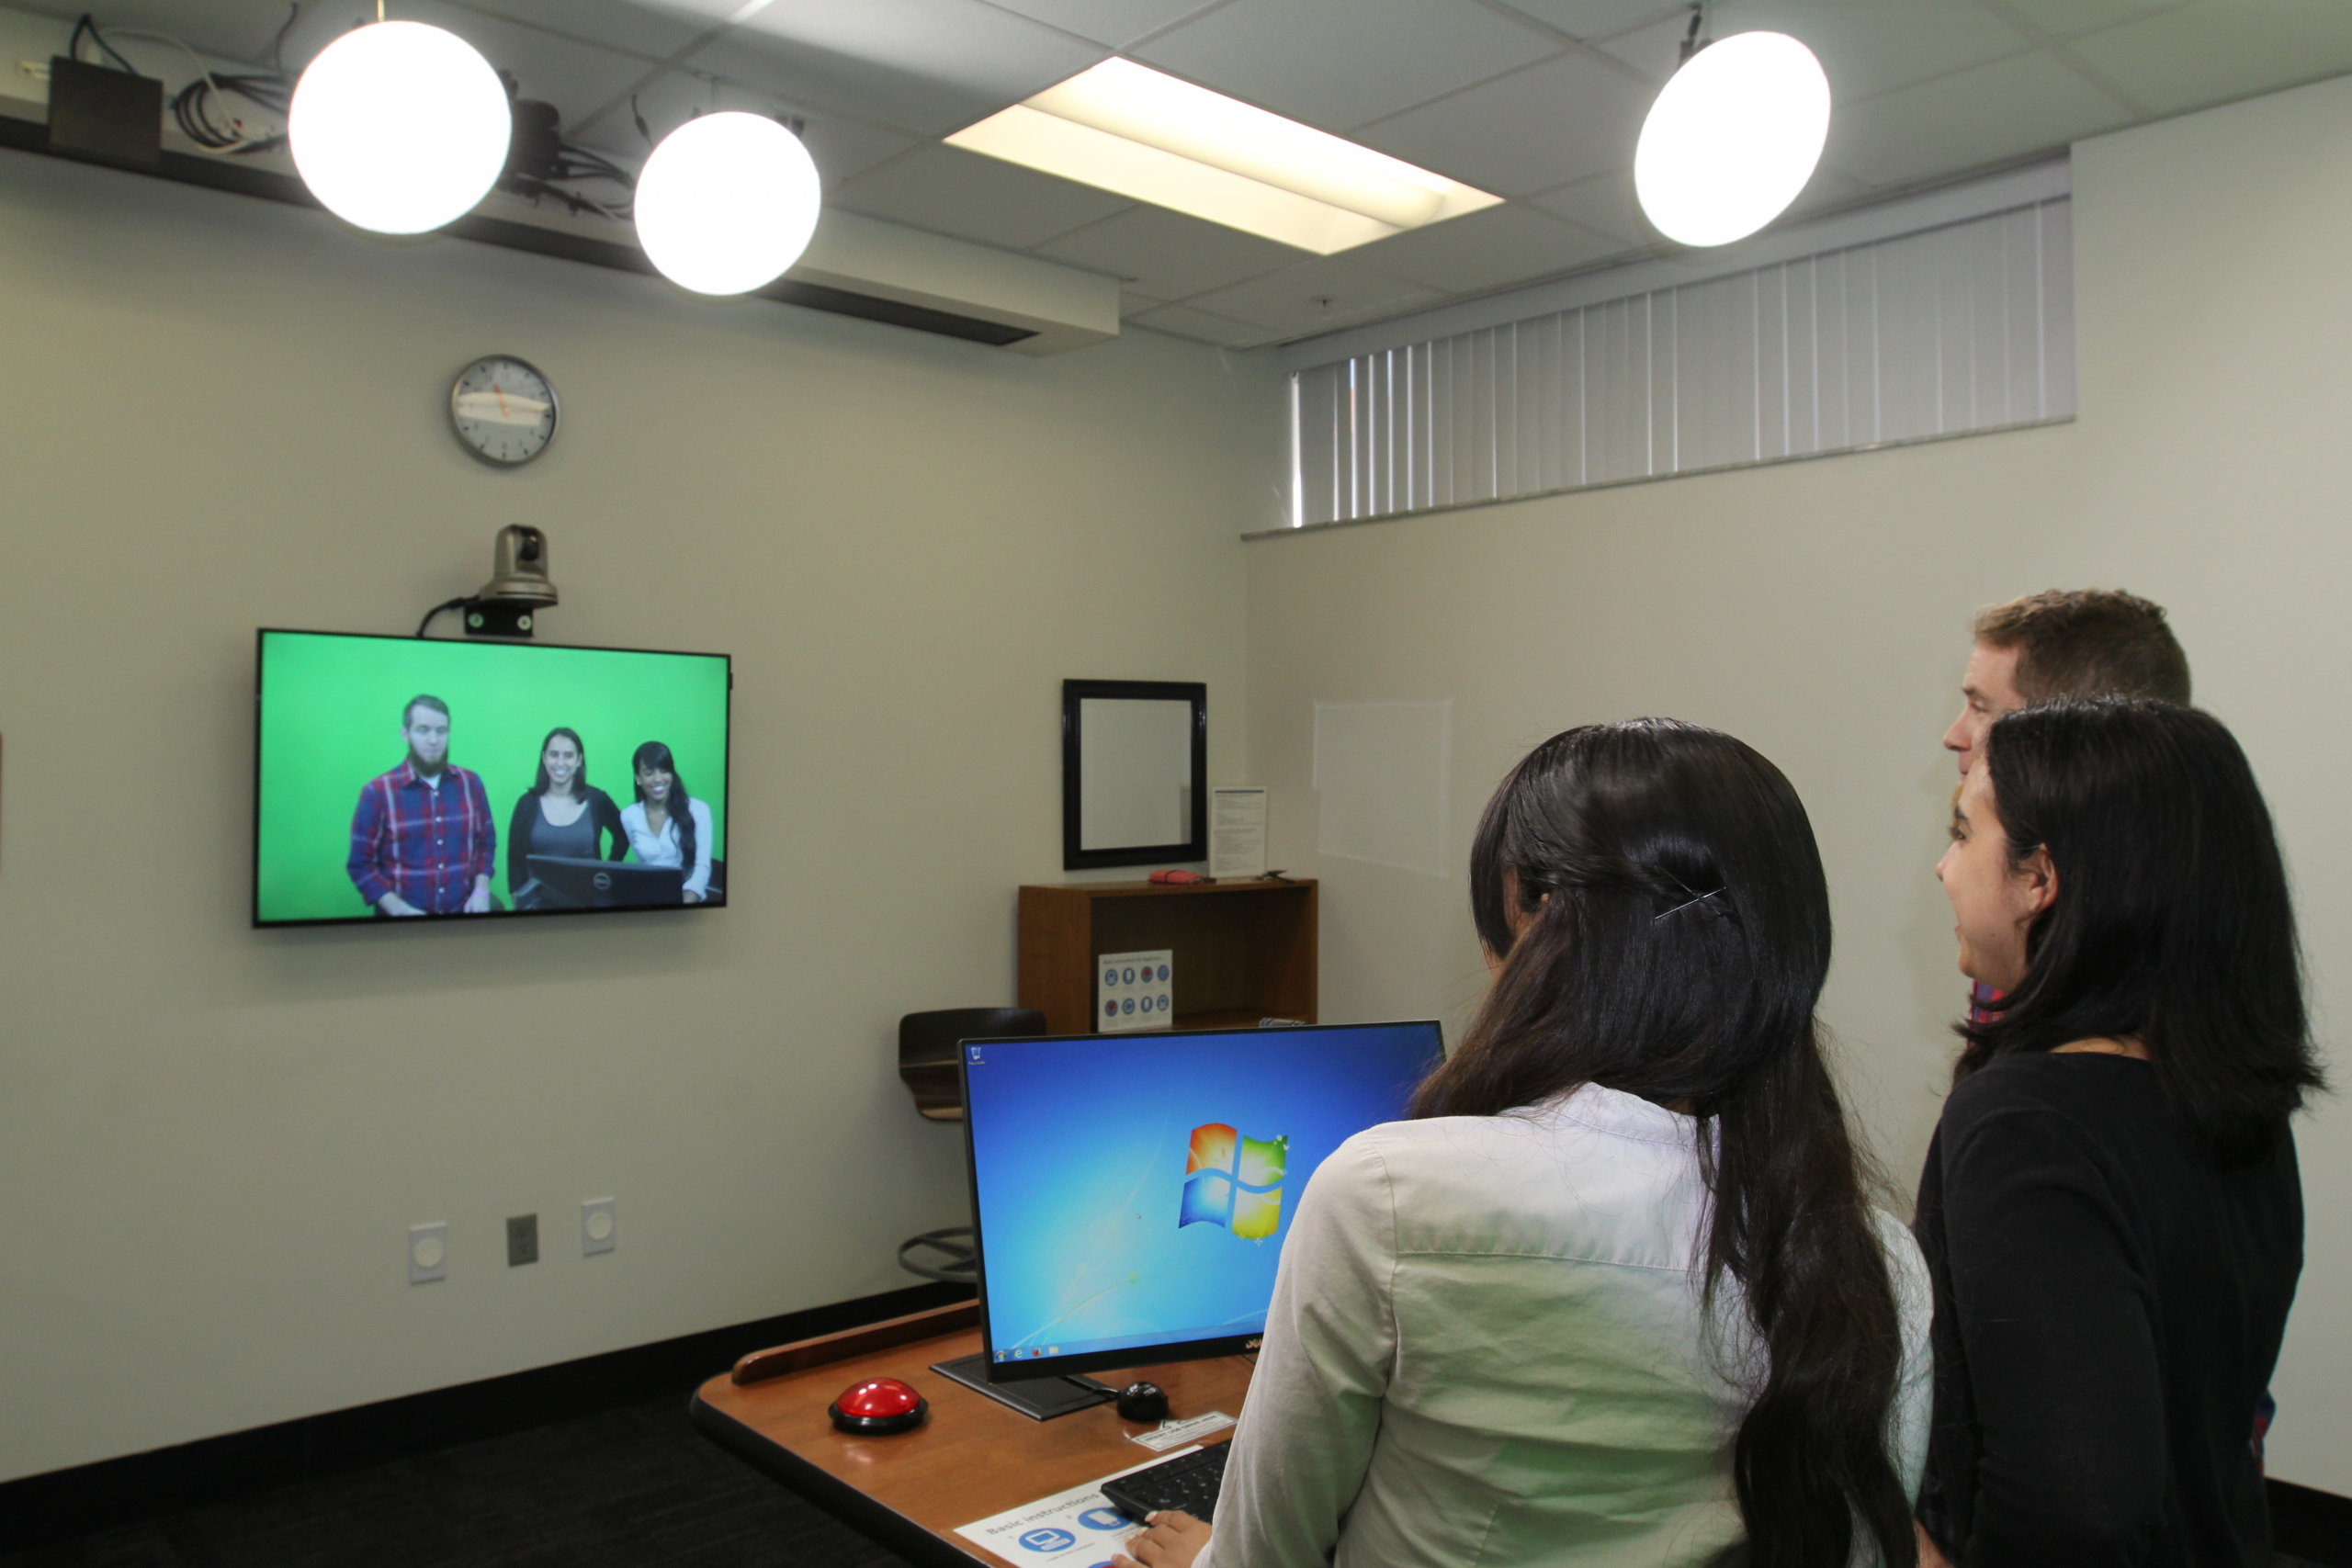 image of three students standing at the podium and recording themselves with the video recording system.